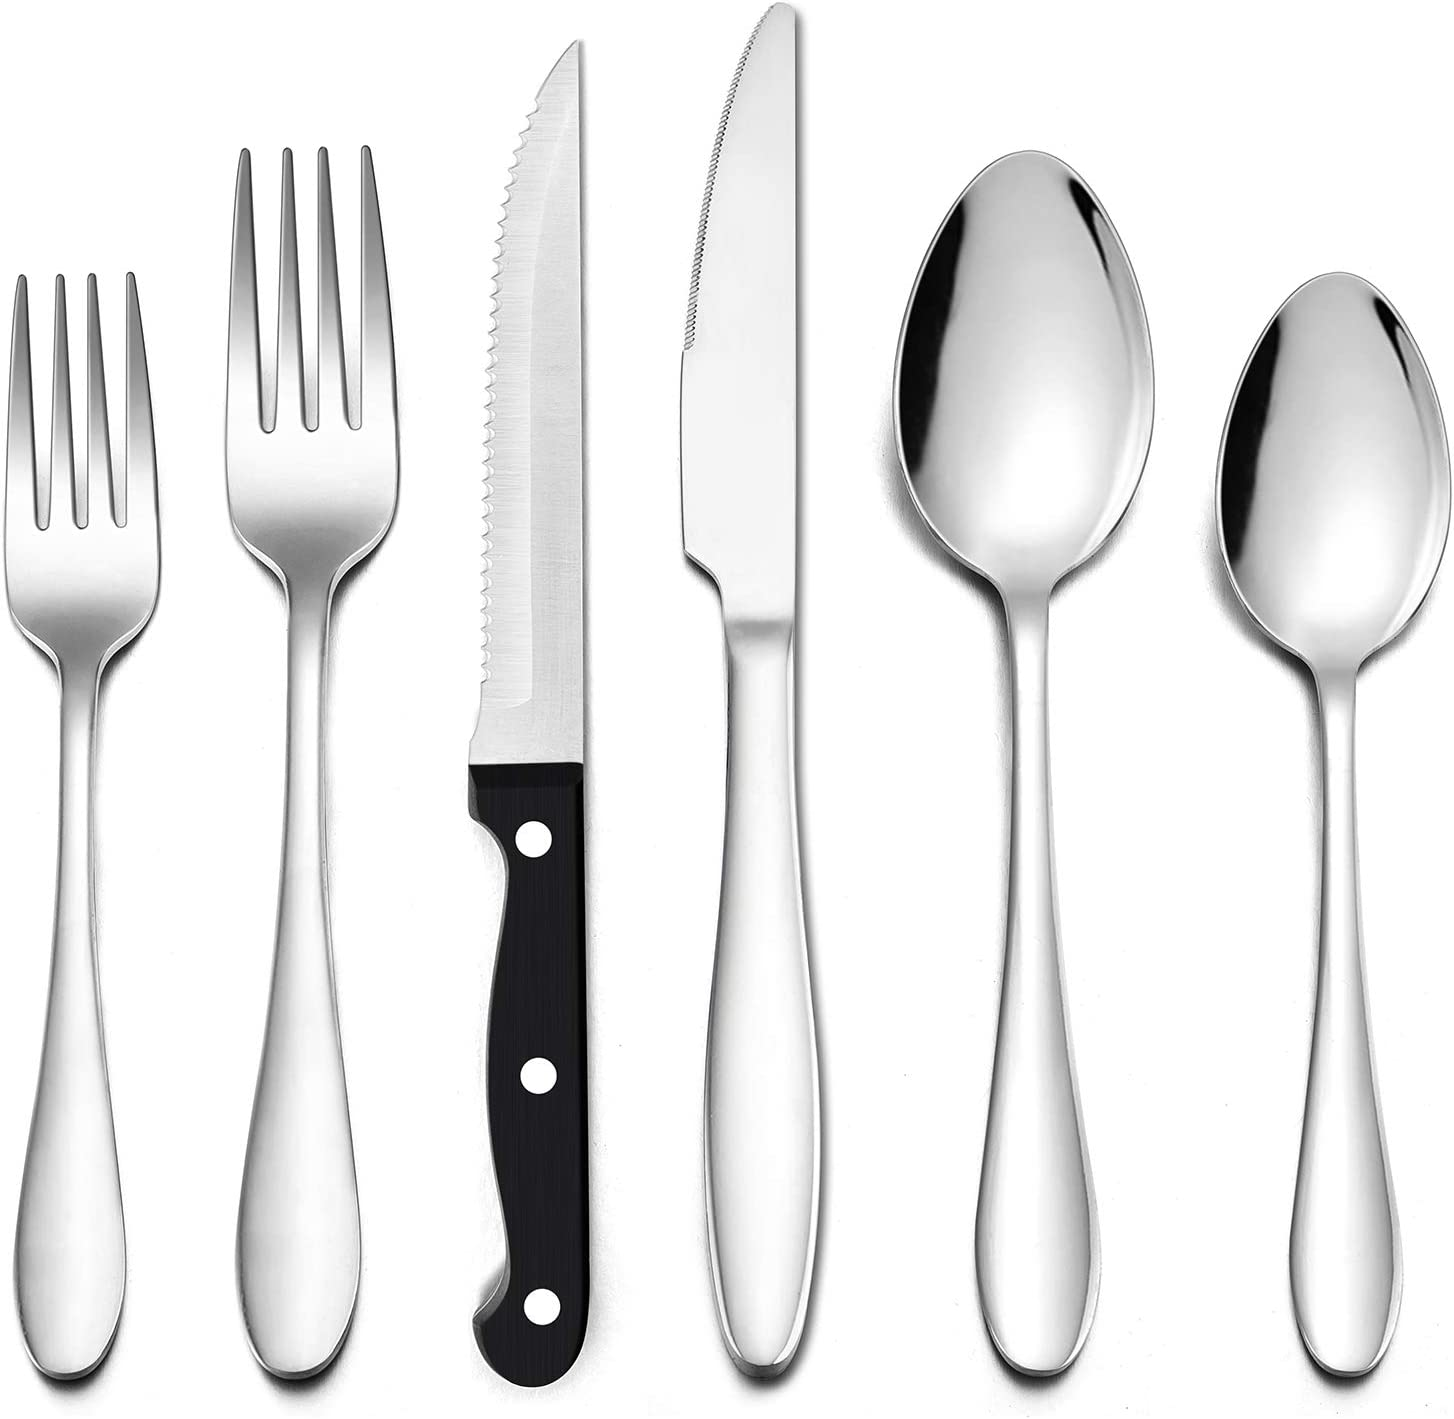 LIANYU 48-Piece Silverware Set with Steak Knives, Stainless Steel Flatware Cutlery Set for 8, Eating Utensils Tableware Include Forks Knives Spoons, Dishwasher Safe